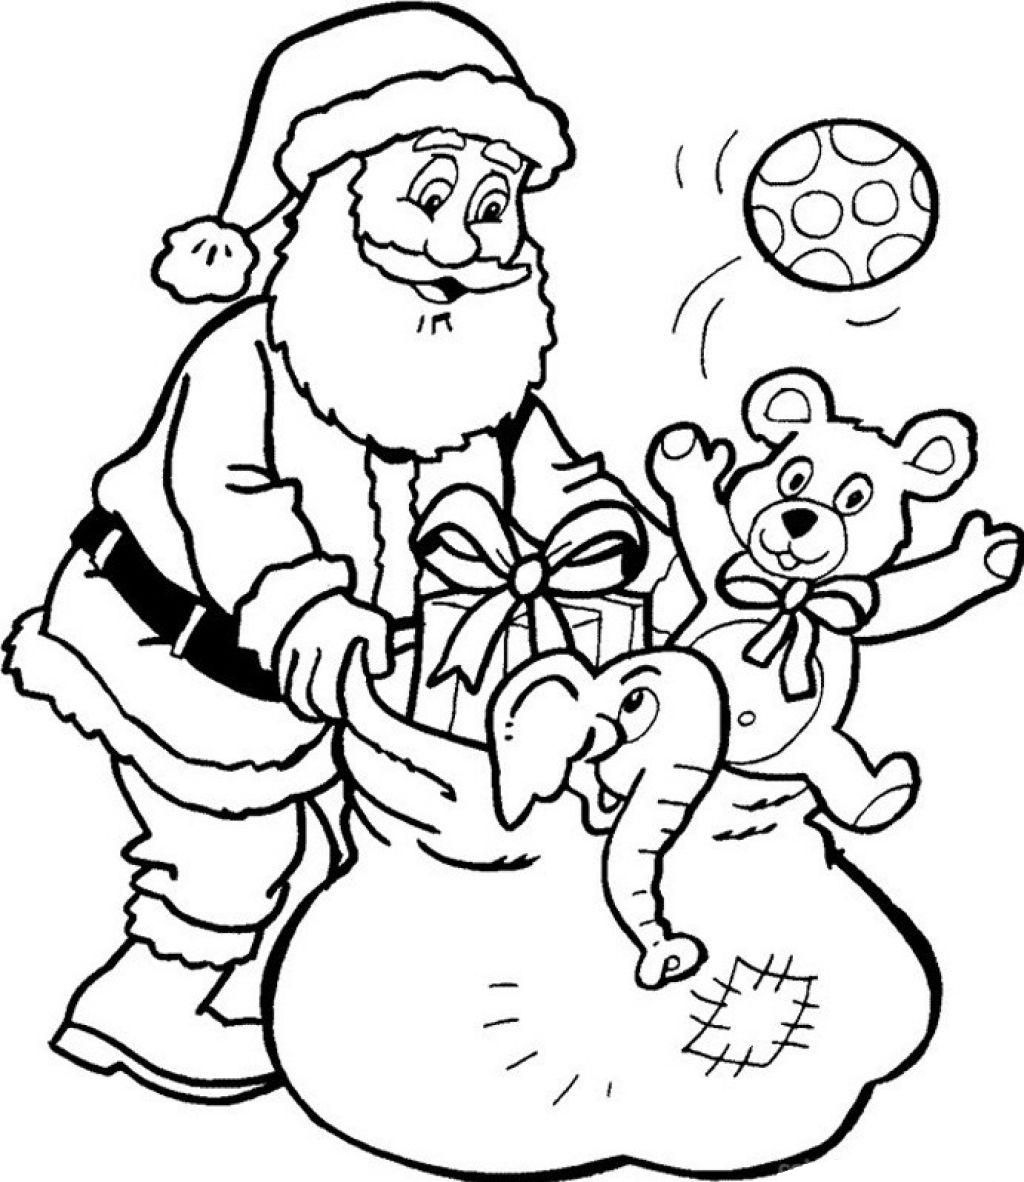 pin on christmas santa coloring line drawing hands free printable designs color by number coloring pages Santa Coloring Page